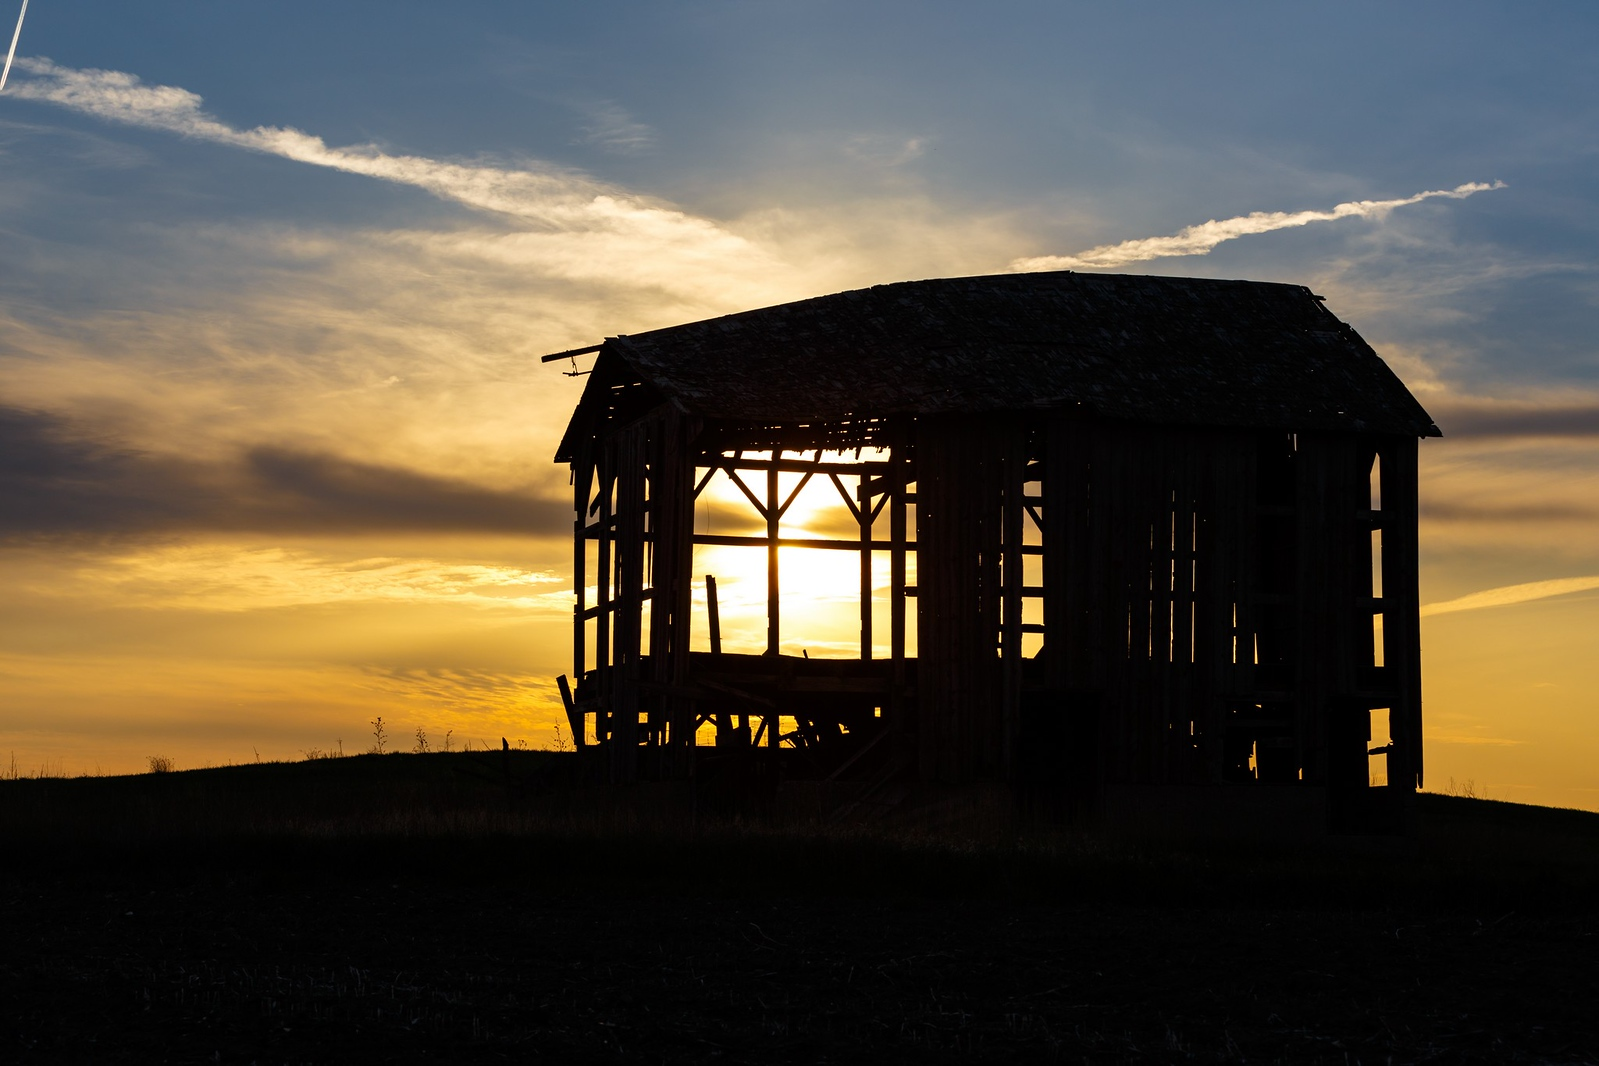 Sunset through a crumbling old barn